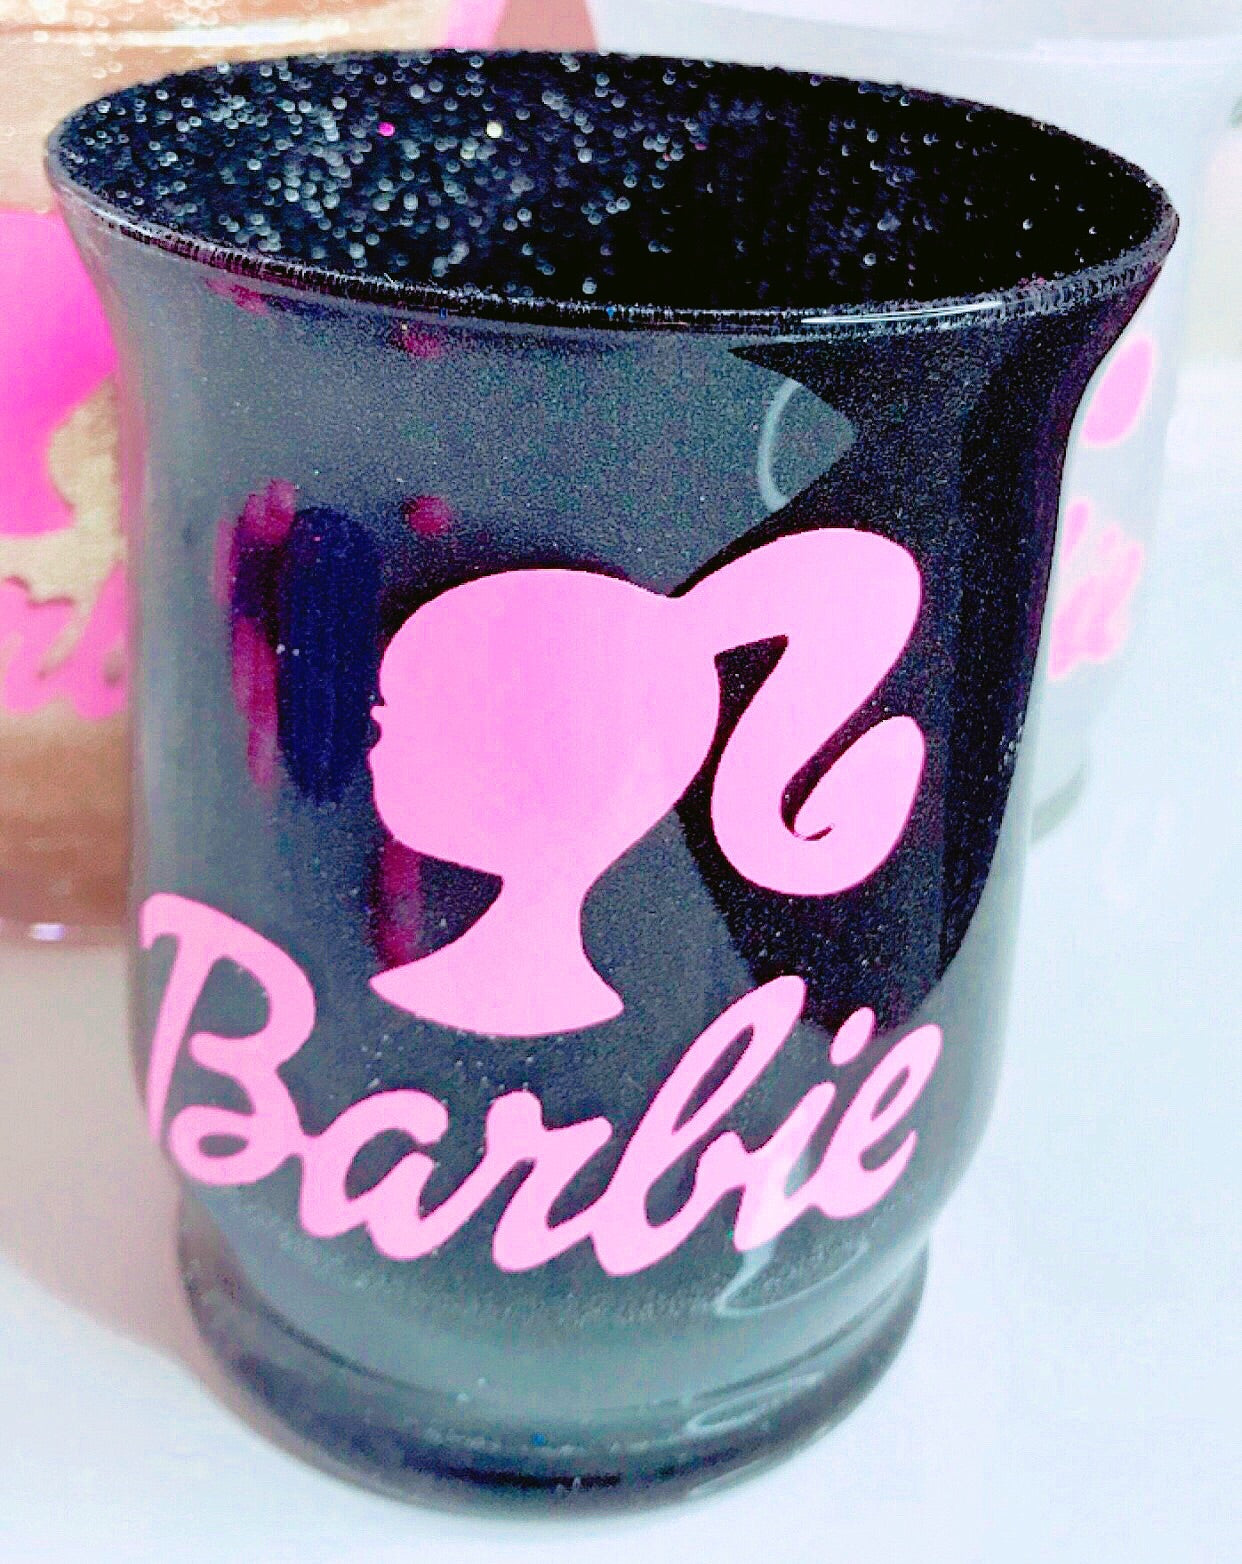 Black glitter Barbie brush bolder